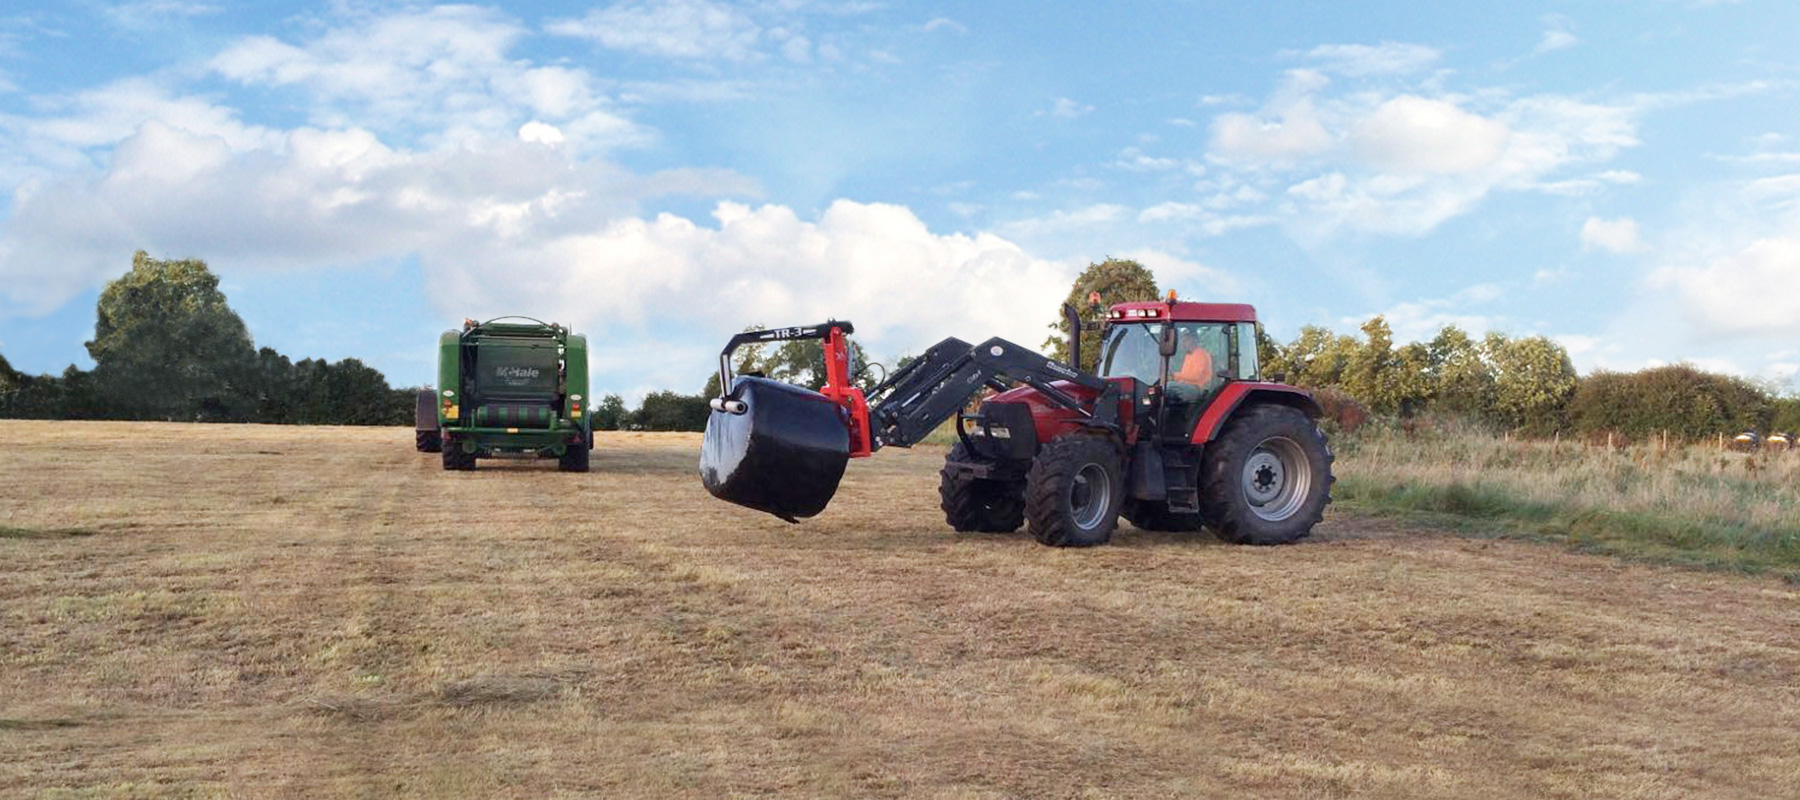 ACF-Penrith-Agriculture-Construction-Forestry-Equipment-Sales-Penrith-Sydney-Blue-Mountains